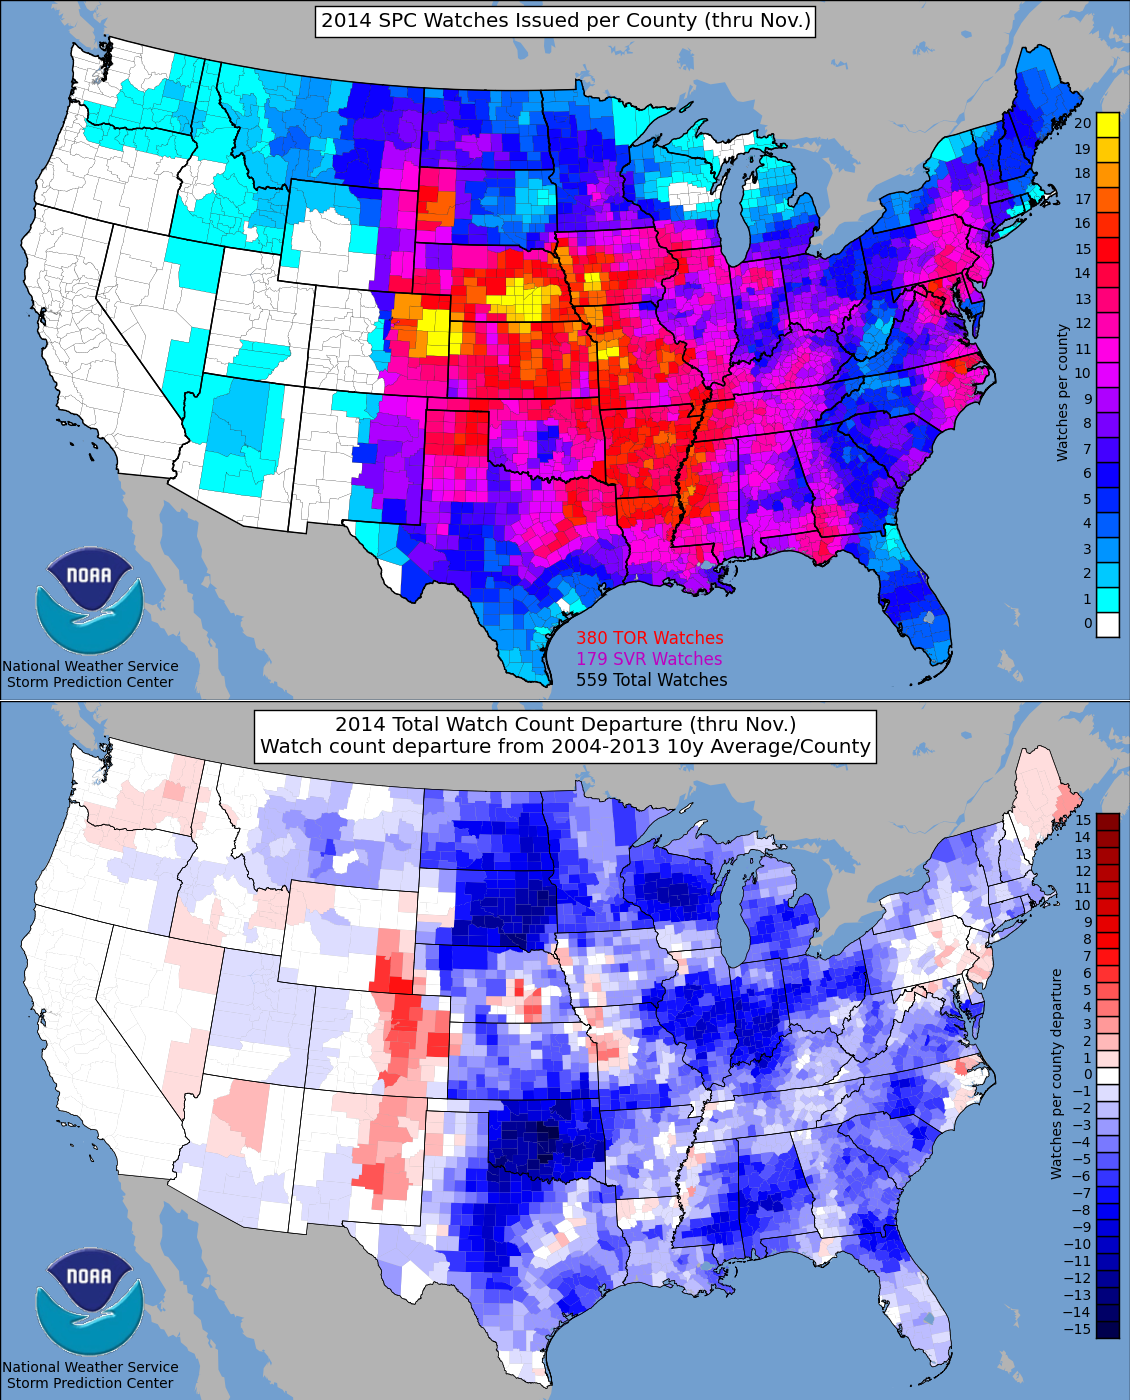 U.S. tornado watches issued in 2014 and the departure from the 10 year normal